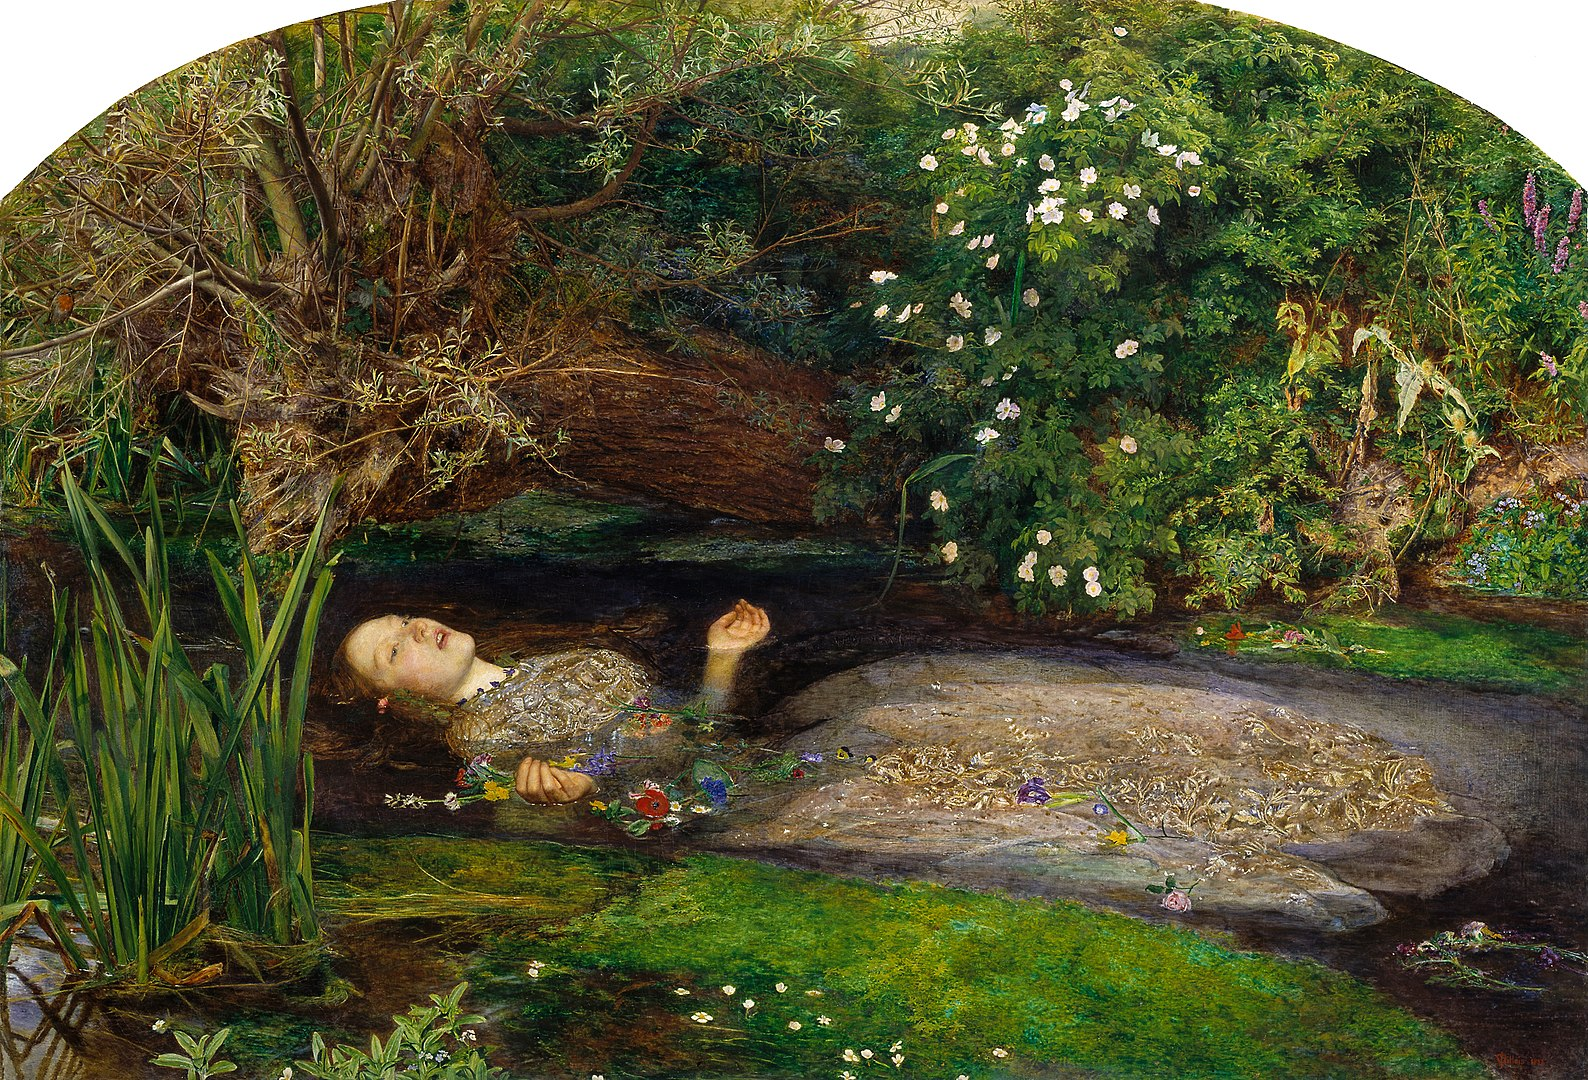 Ophelia, painted by John Everett Millais. A painting of a woman singing while she drowns in water.